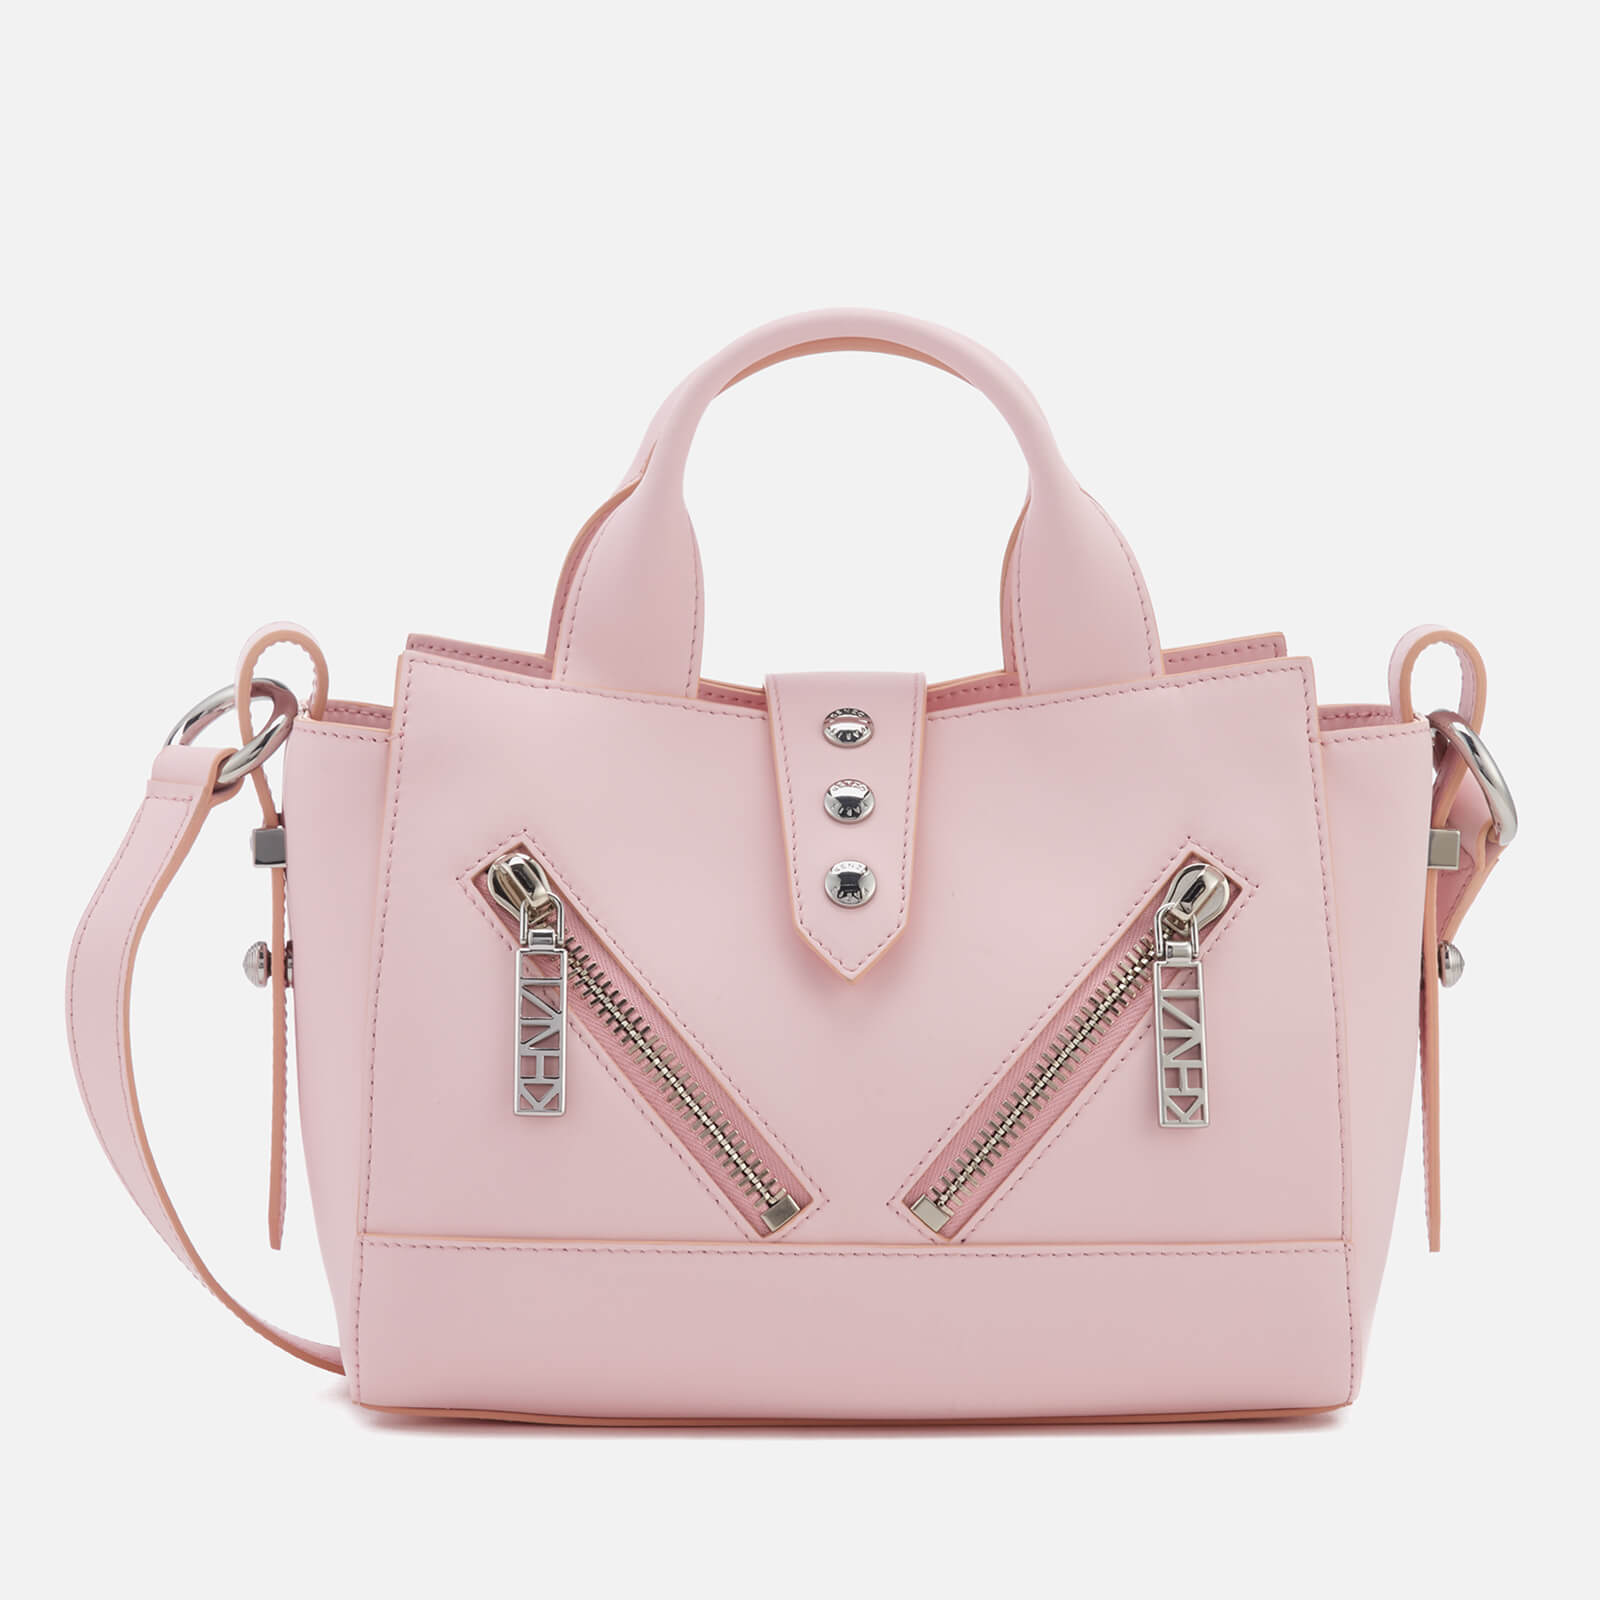 83ab361e6b8 KENZO Women's Kalifornia Mini Tote Bag - Pink - Free UK Delivery over £50